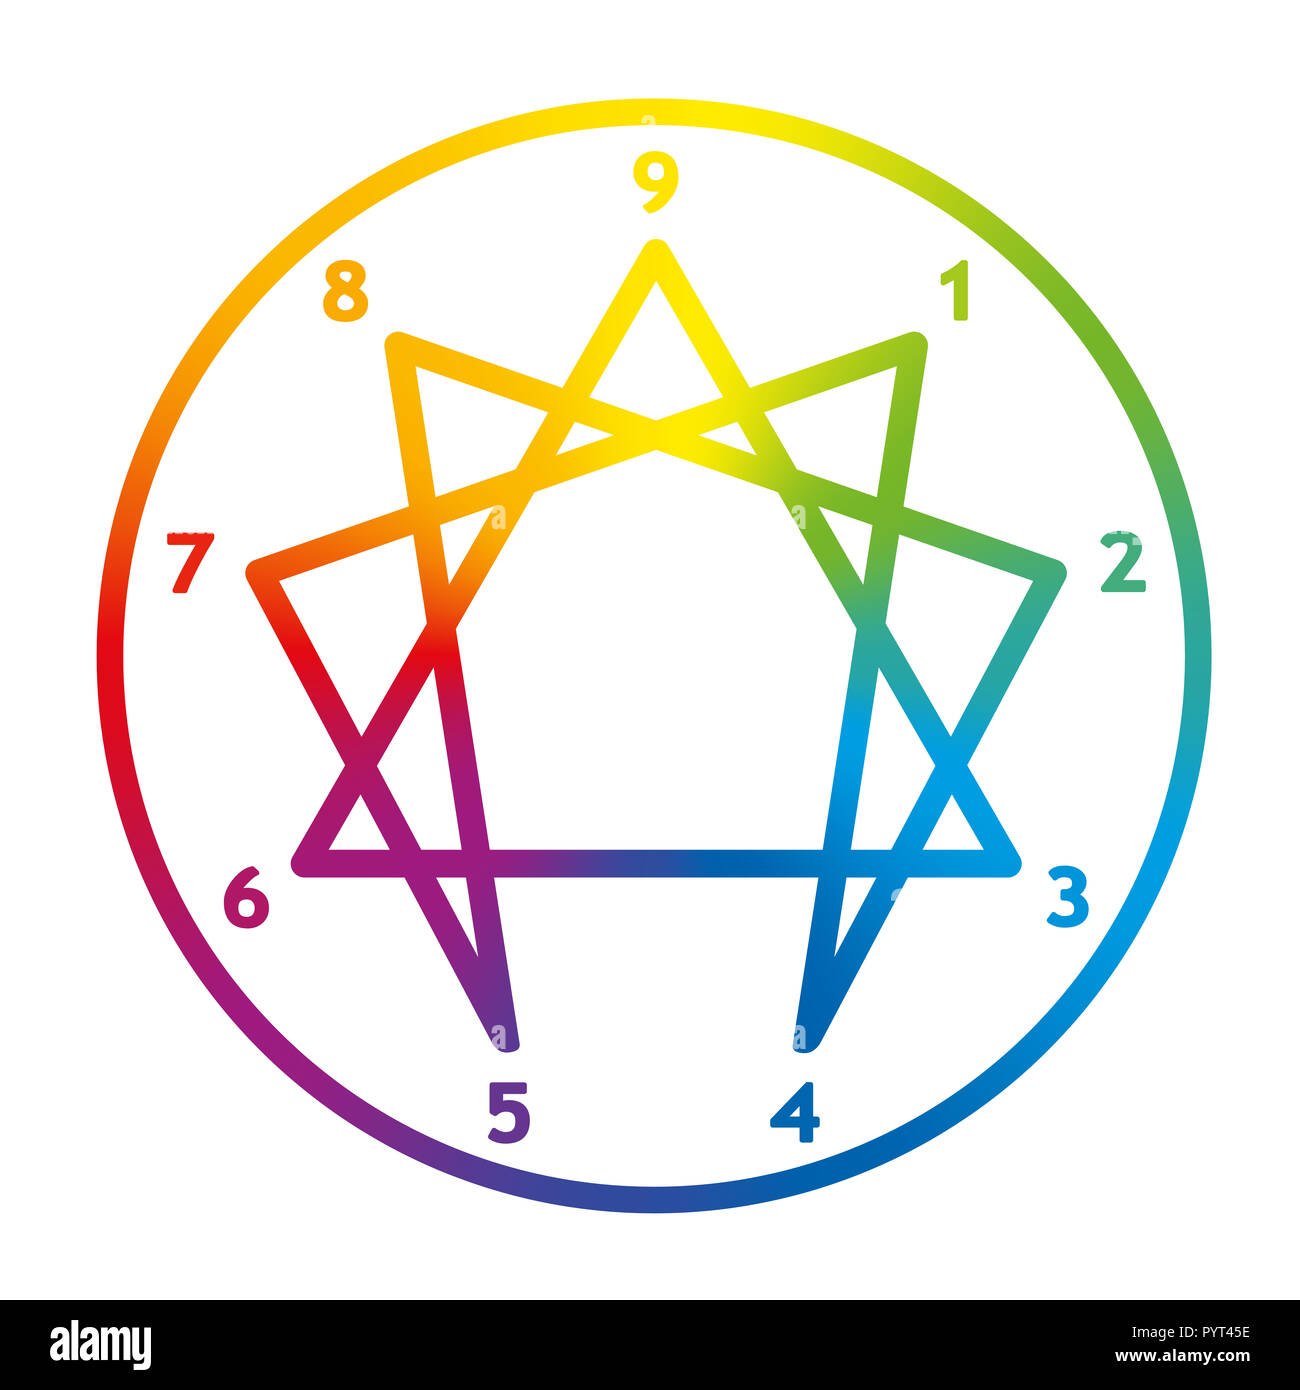 Enneagram of Personality. Sign, logo, pictogram with nine numbers, ring and typical structured figure. Rainbow gradient colored  illustration. - Stock Image